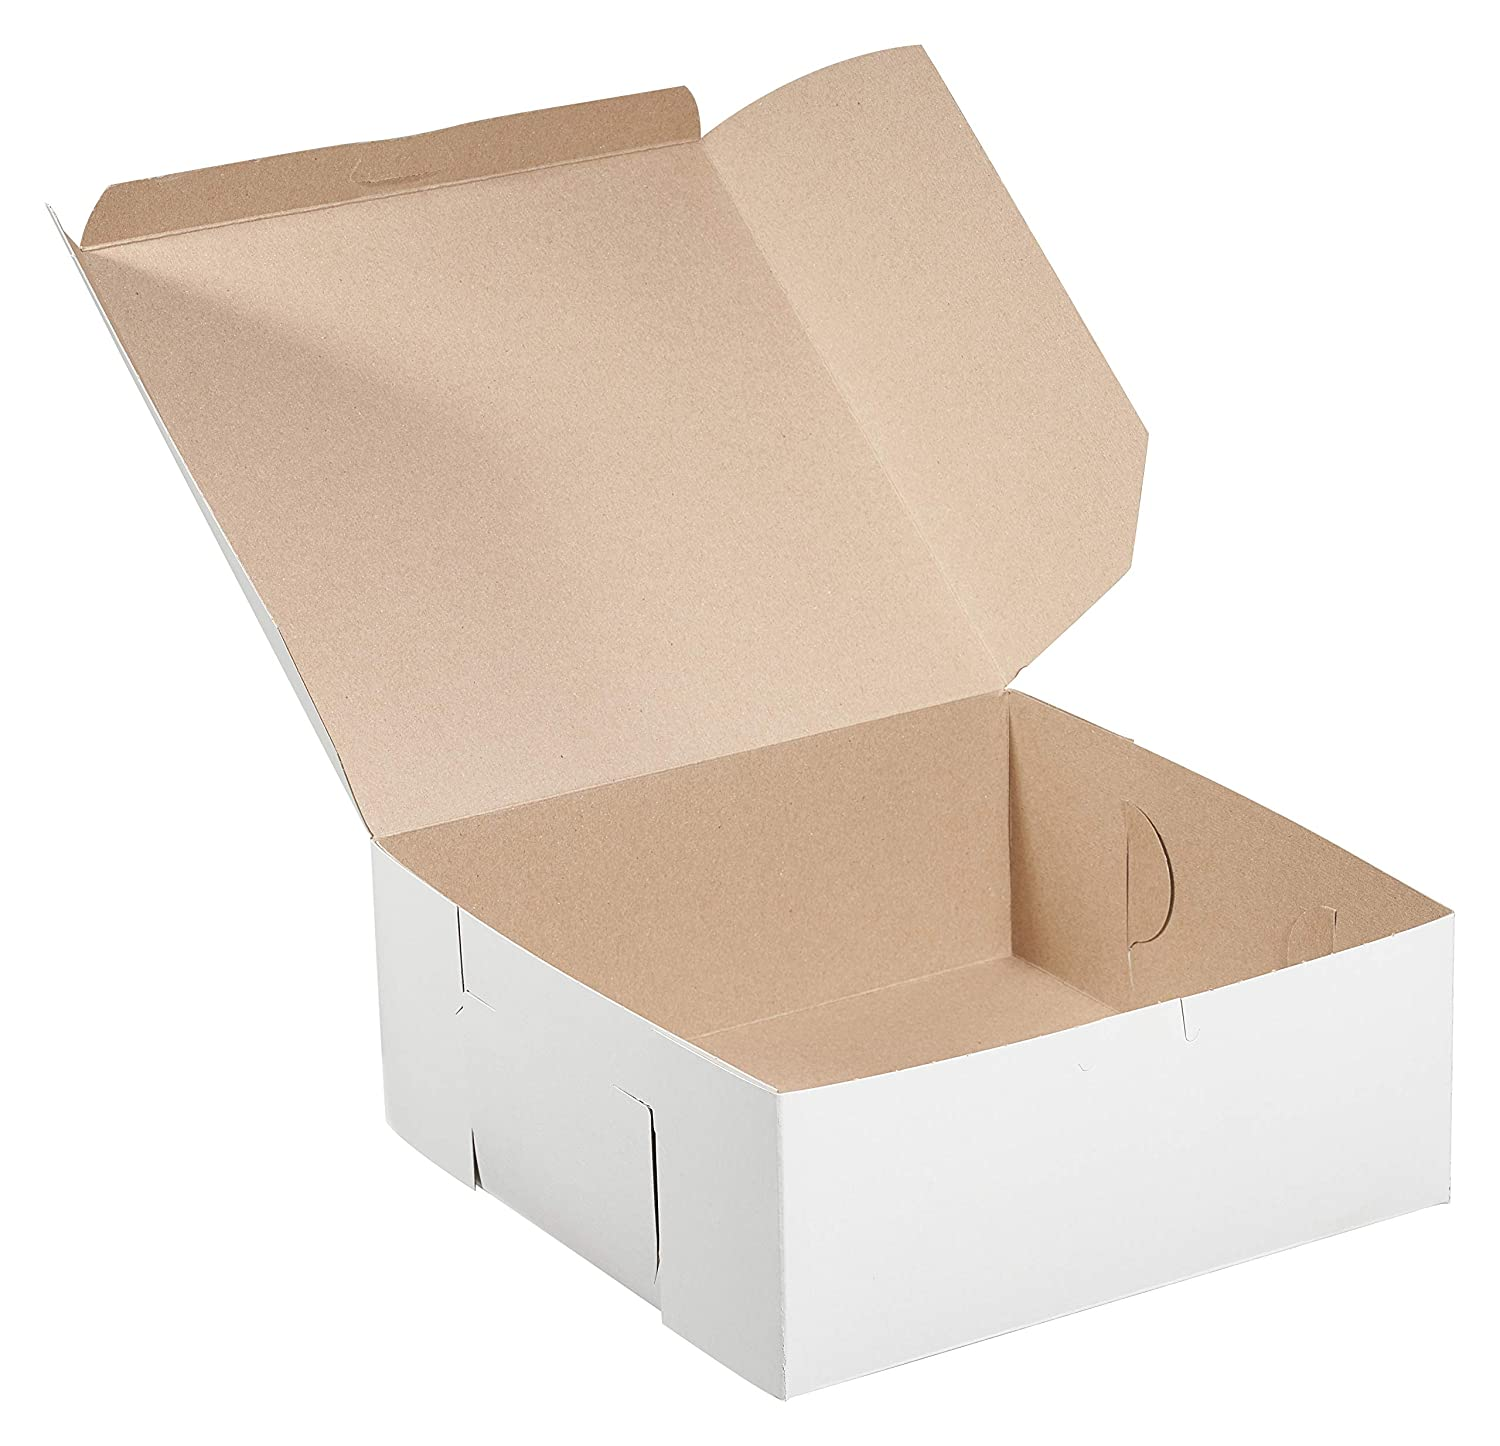 Cakes Eco Friendly Paper Cardboard Recyclable for Pastries White Kraft Paperboard for Home or Retail Baby Shower White Bakery Pastry Boxes 10 x 10 x 5 Inches Gift Box Pies Cookies 20 Pack